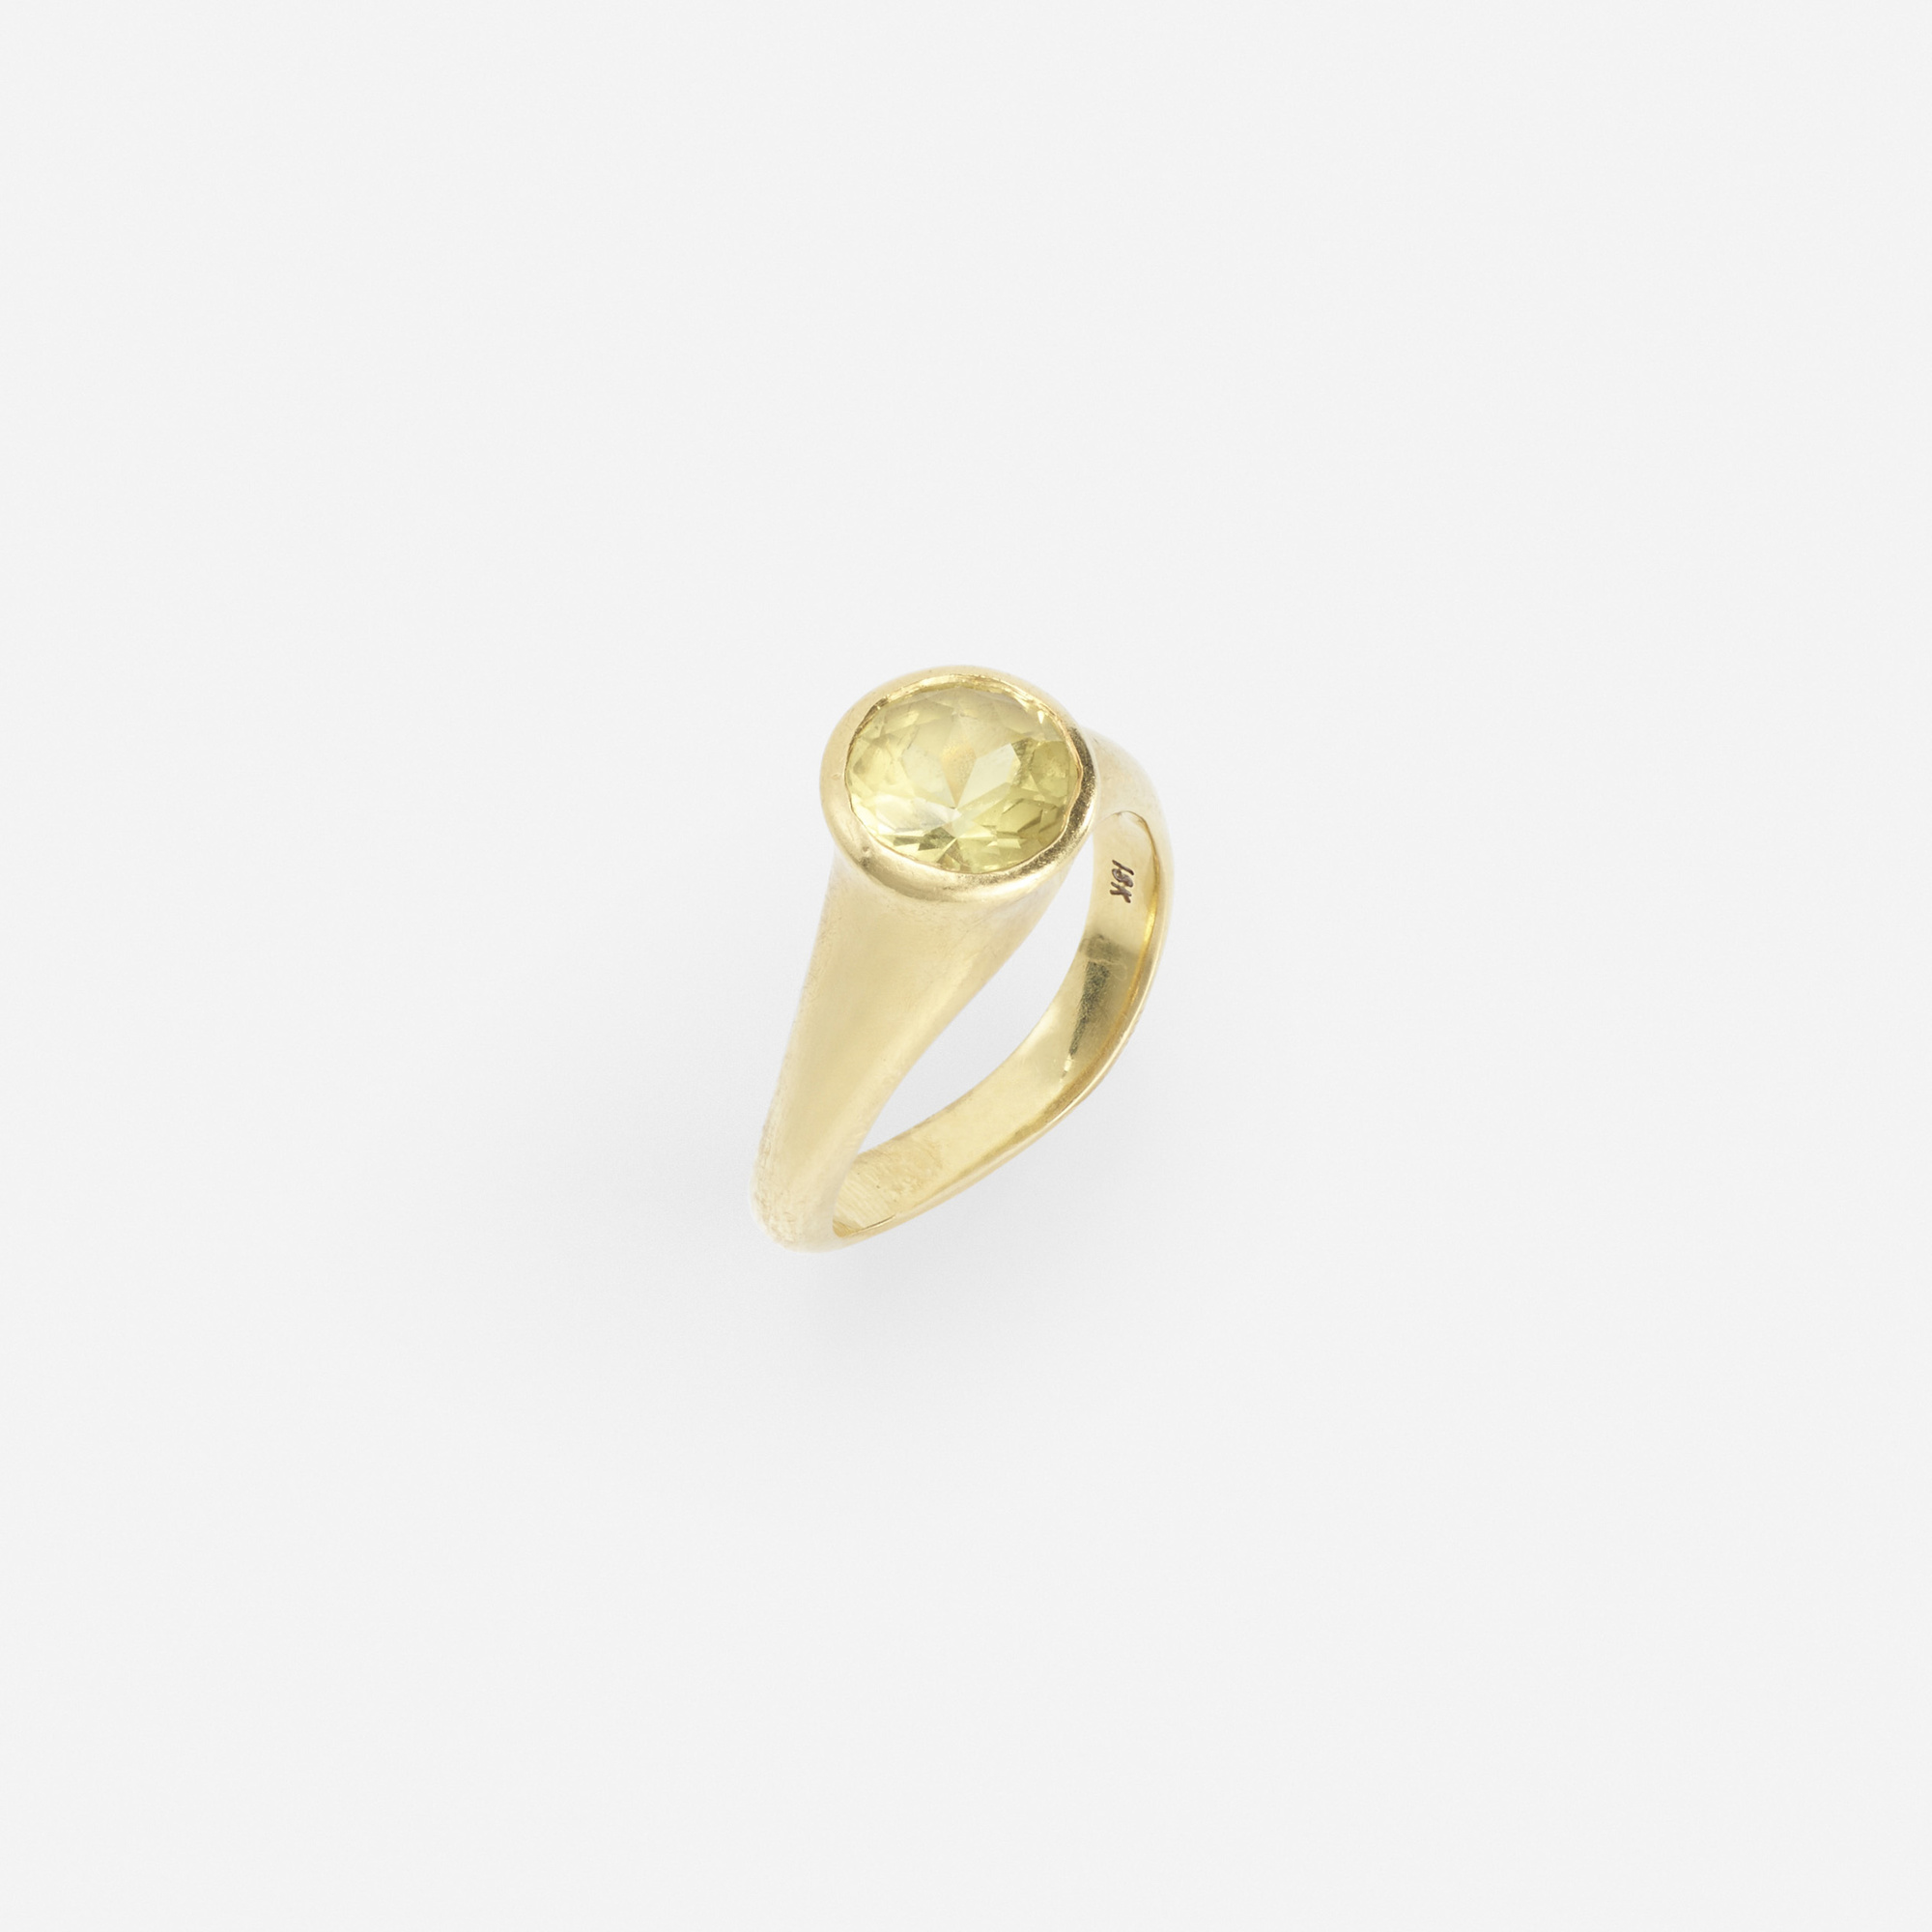 243: Angela Cummings / A gold and yellow sapphire ring (1 of 1)